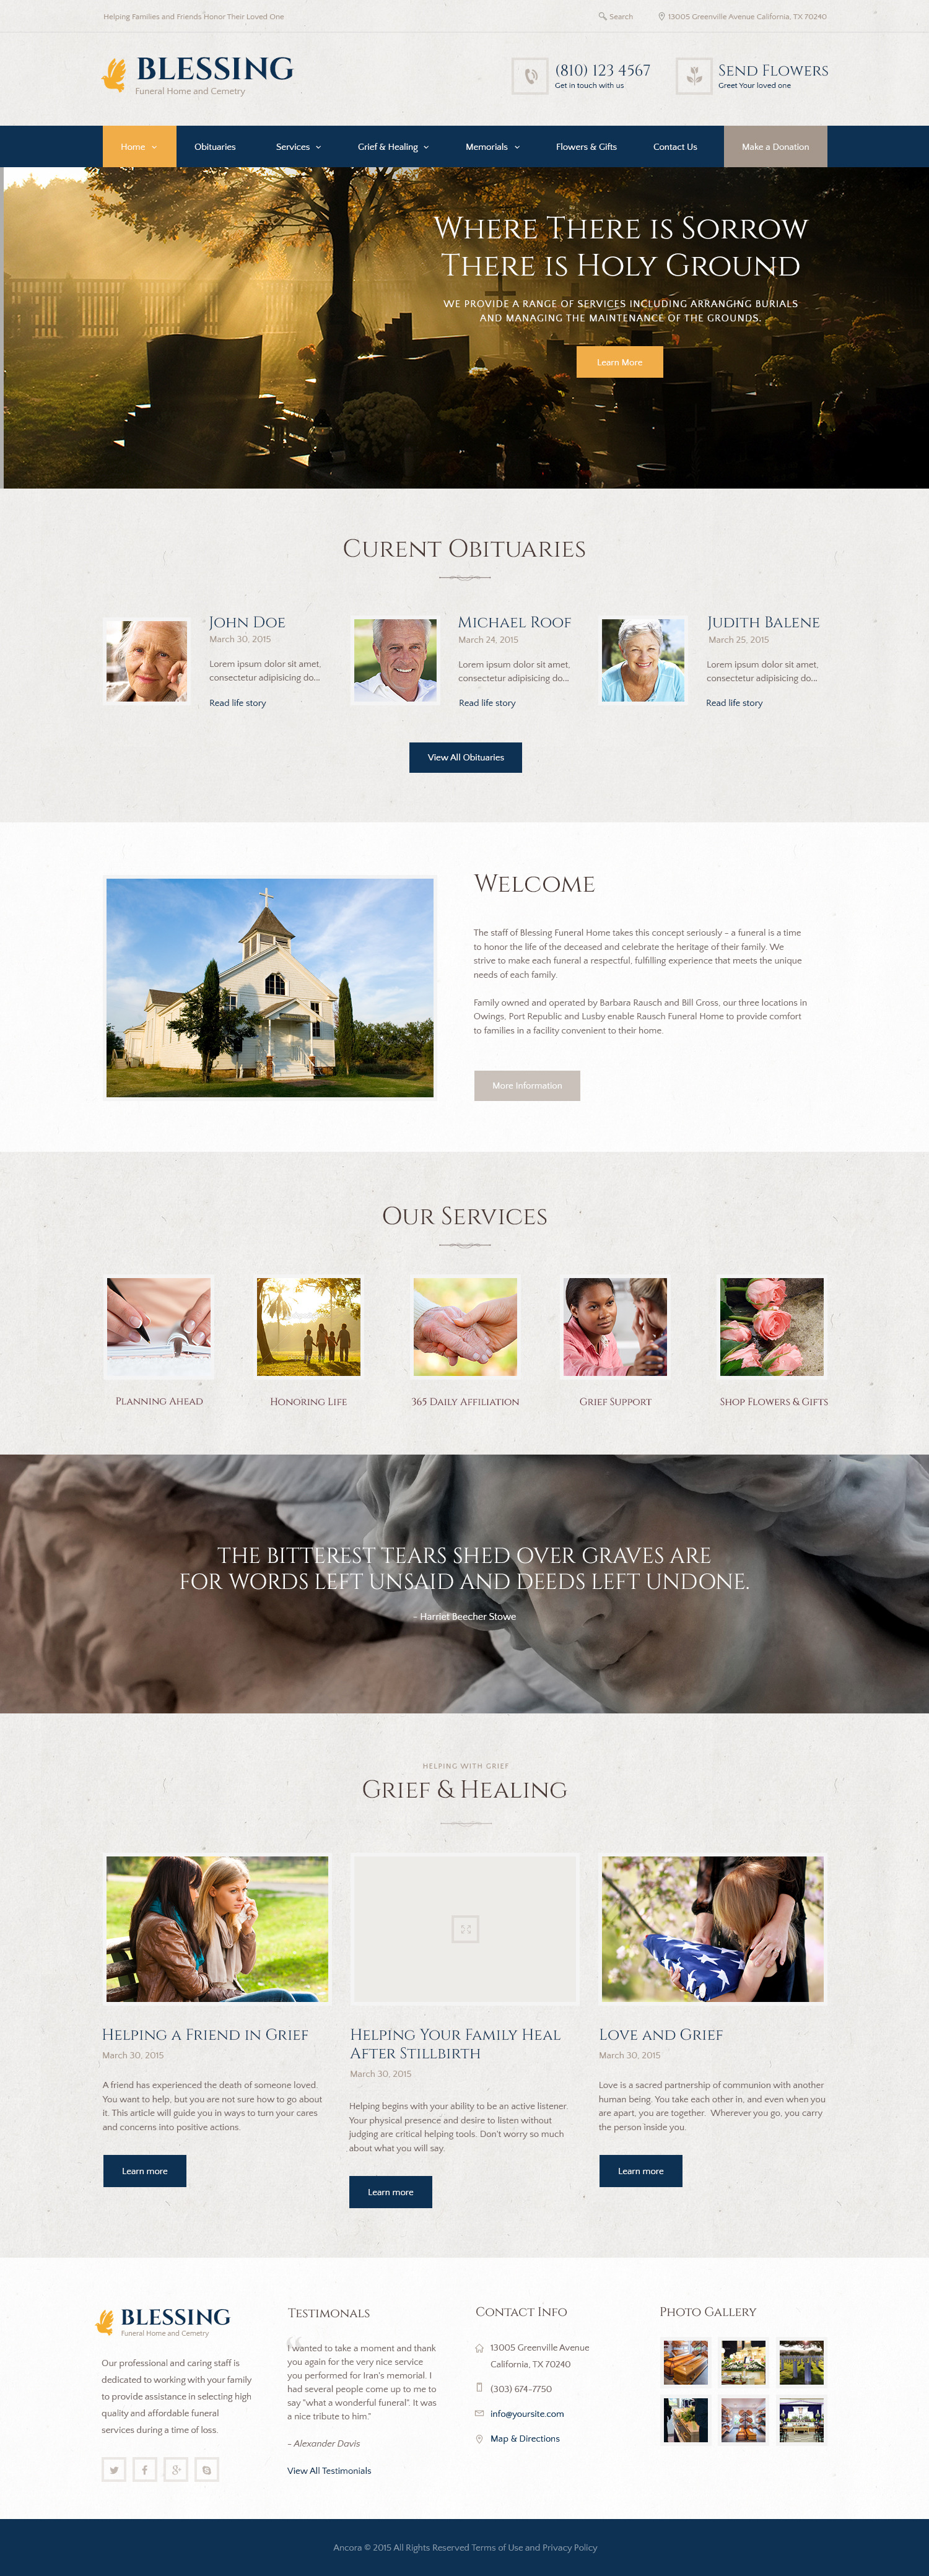 Blessing | Funeral Home WordPress Theme by AncoraThemes | ThemeForest